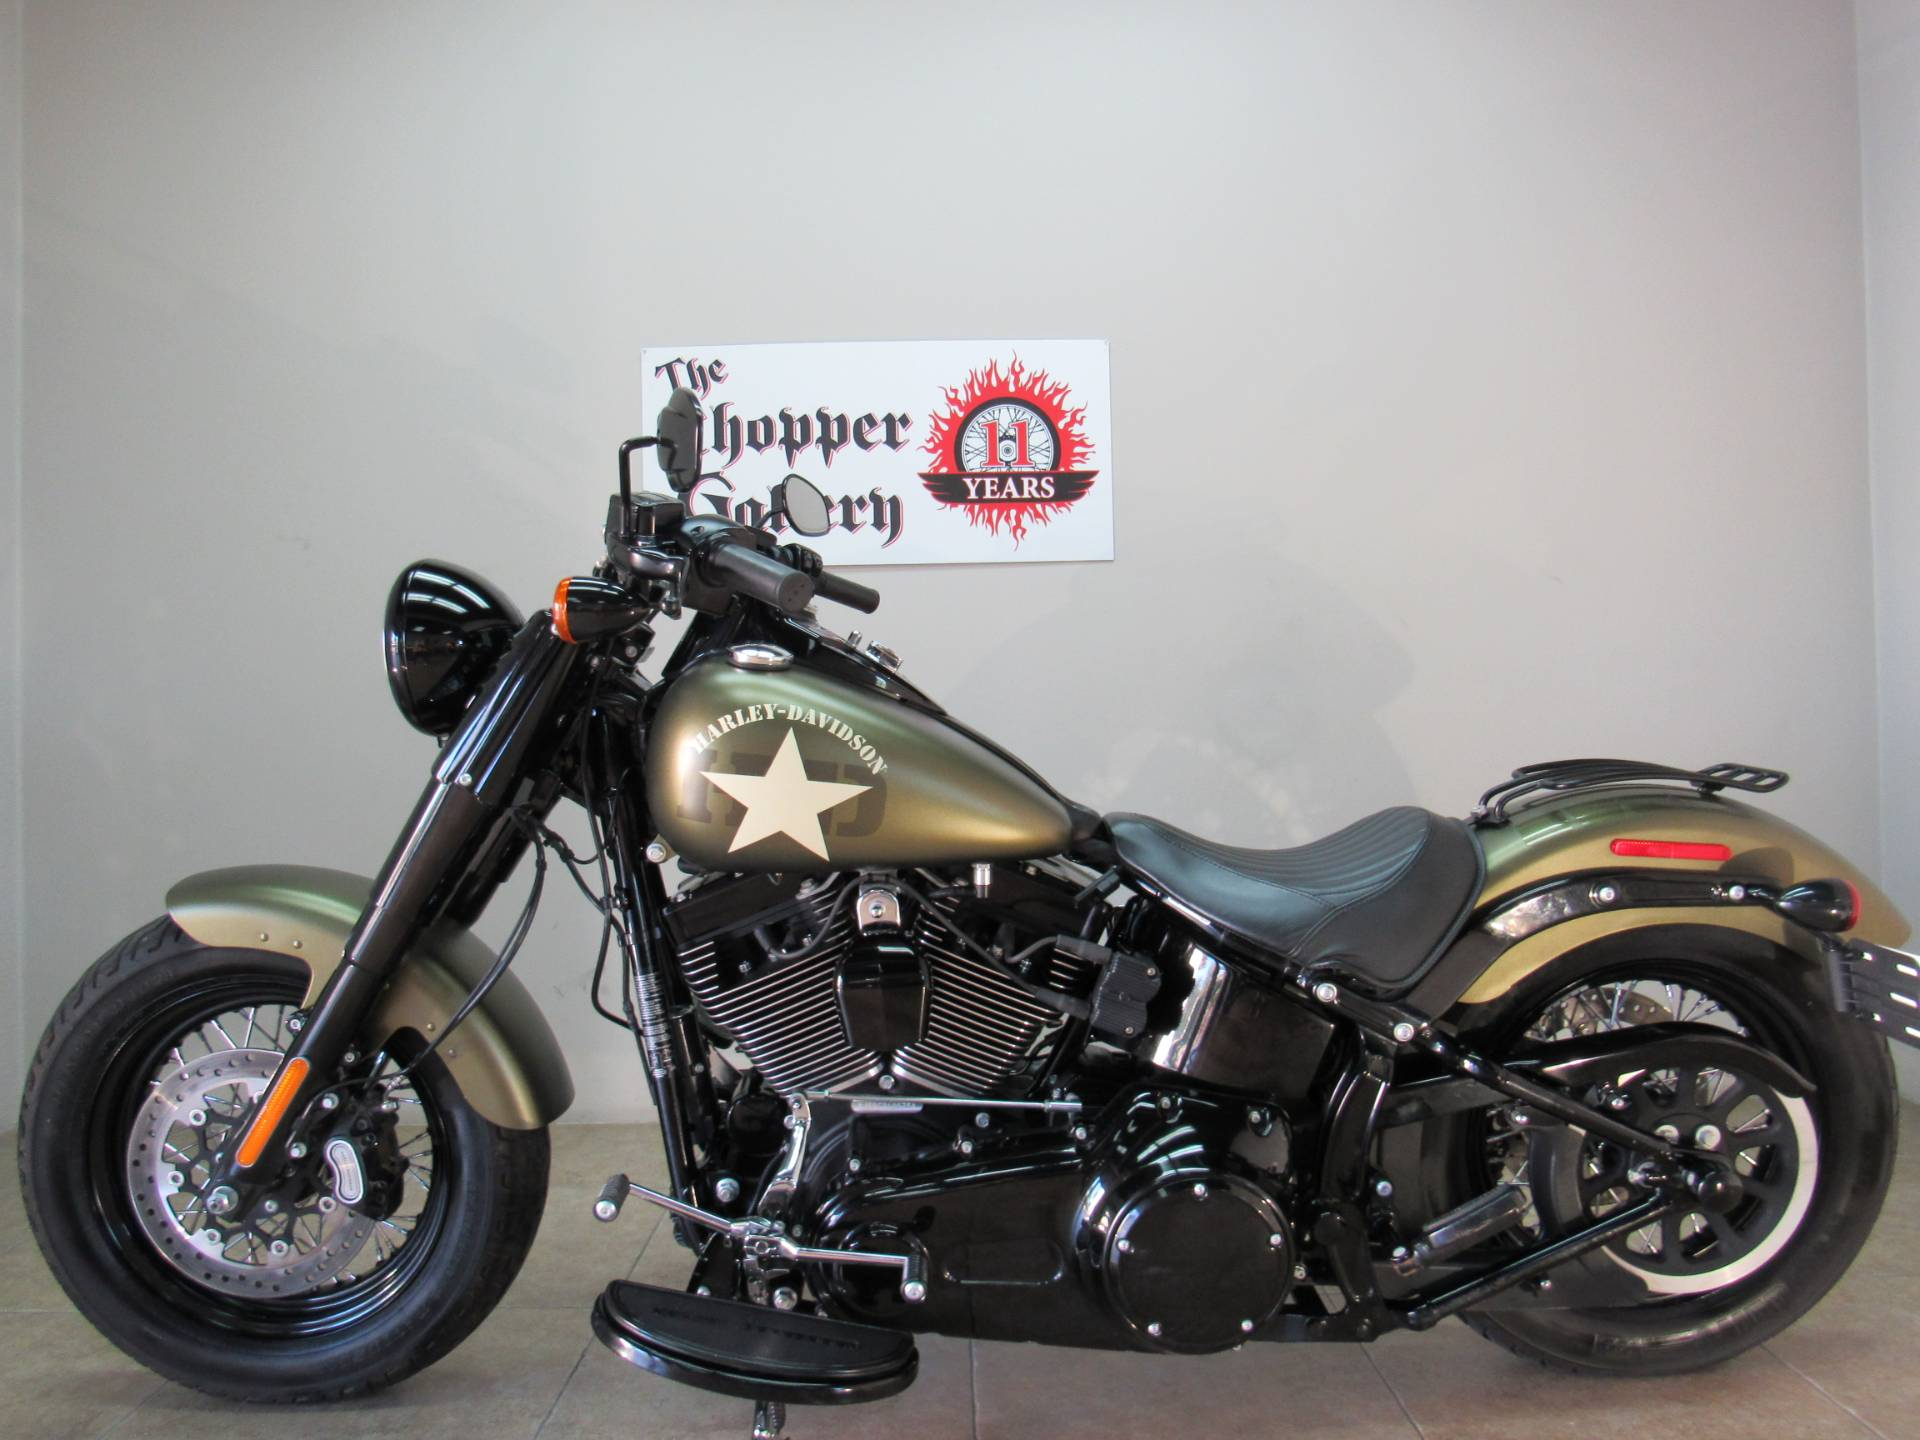 2016 Harley-Davidson Softail Slim® S in Temecula, California - Photo 1